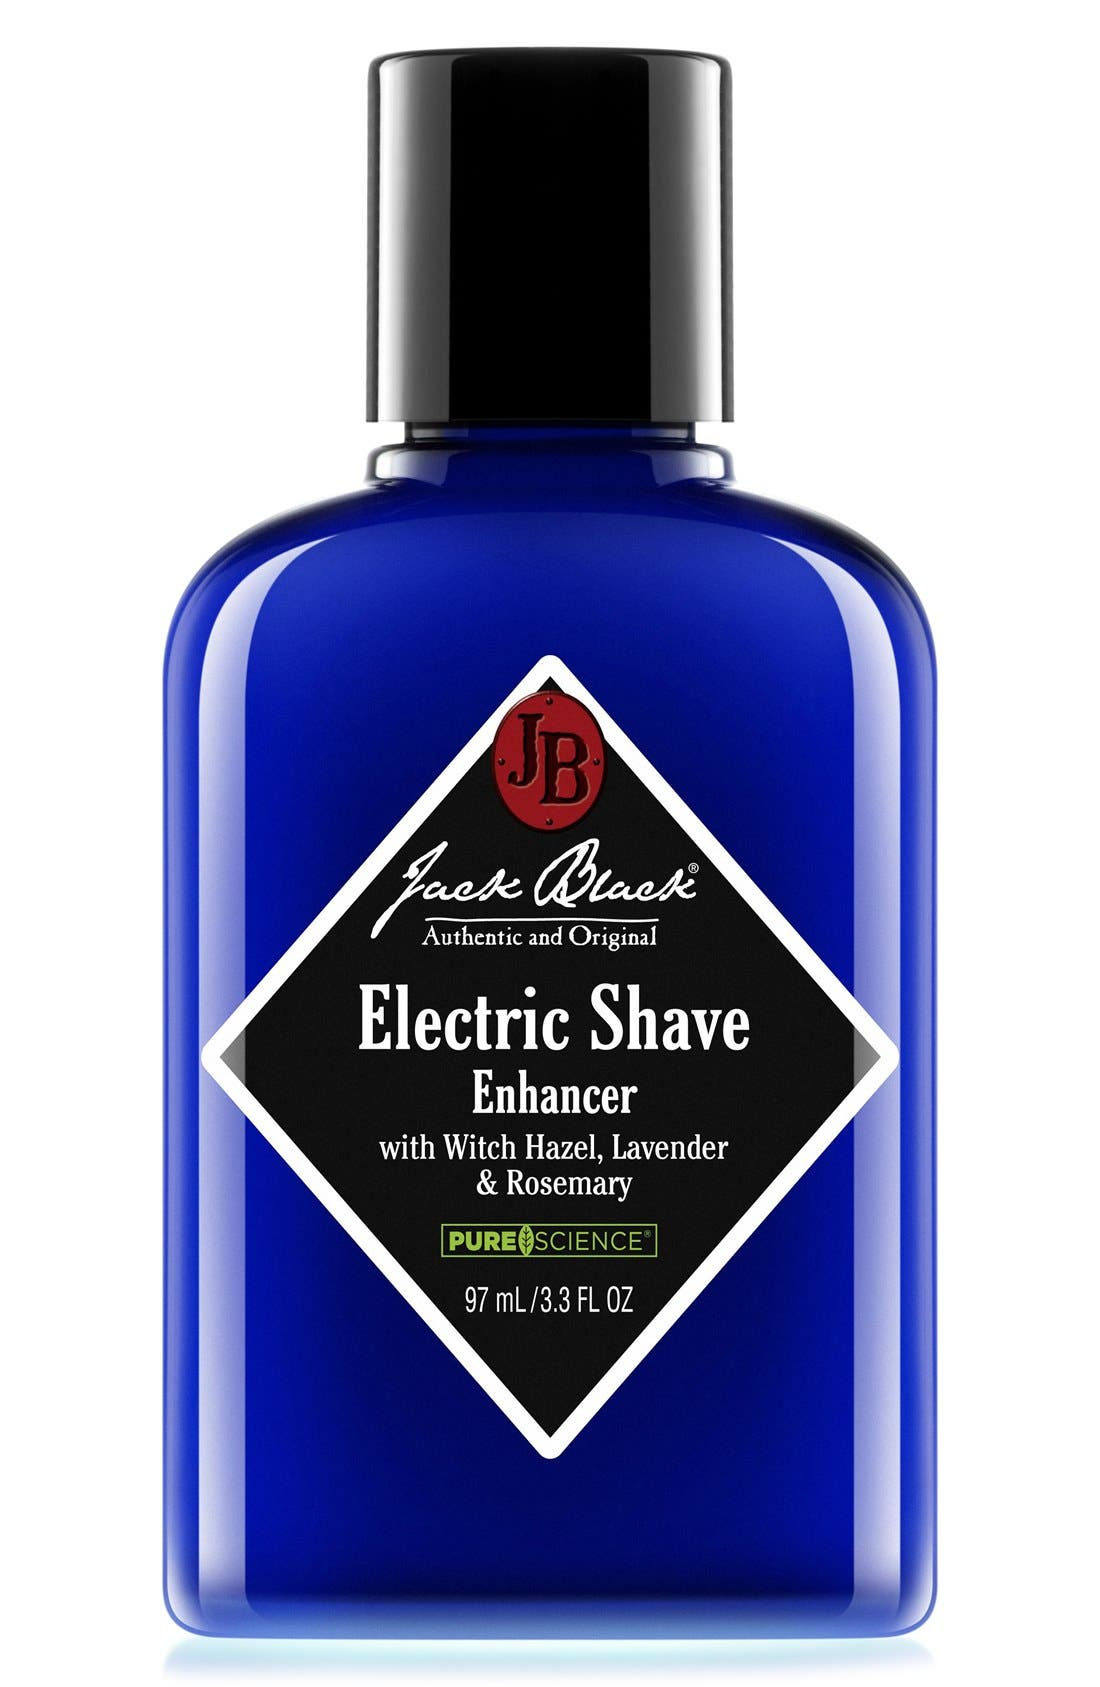 Jack Black Electric Shave Enhancer with Witch Hazel, Lavender & Rosemary